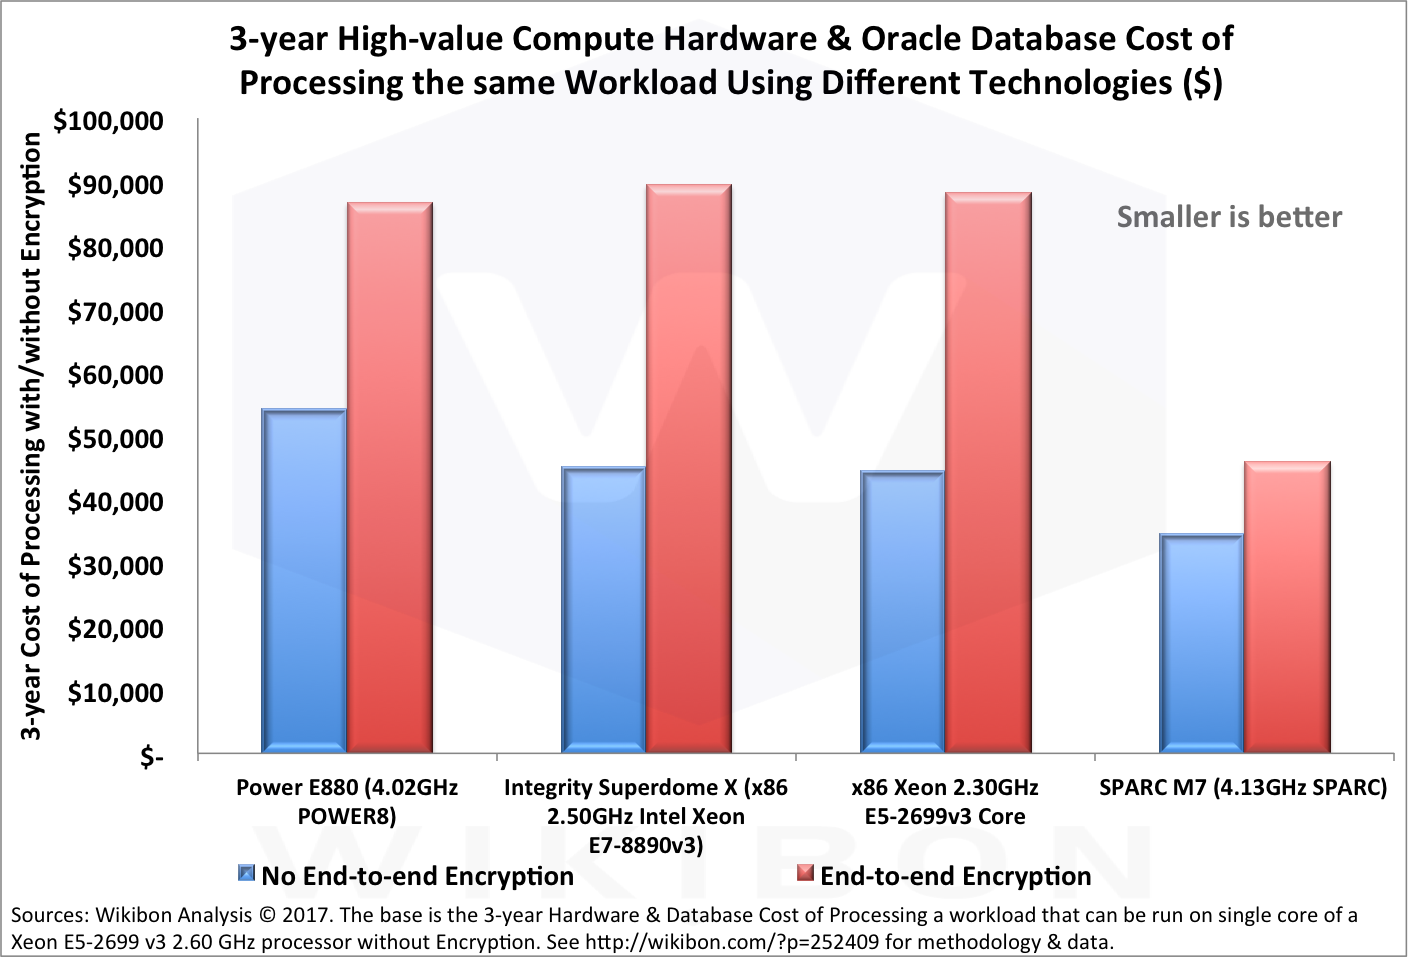 Encrypting Oracle Workloads becomes Cost-effective and Mandatory